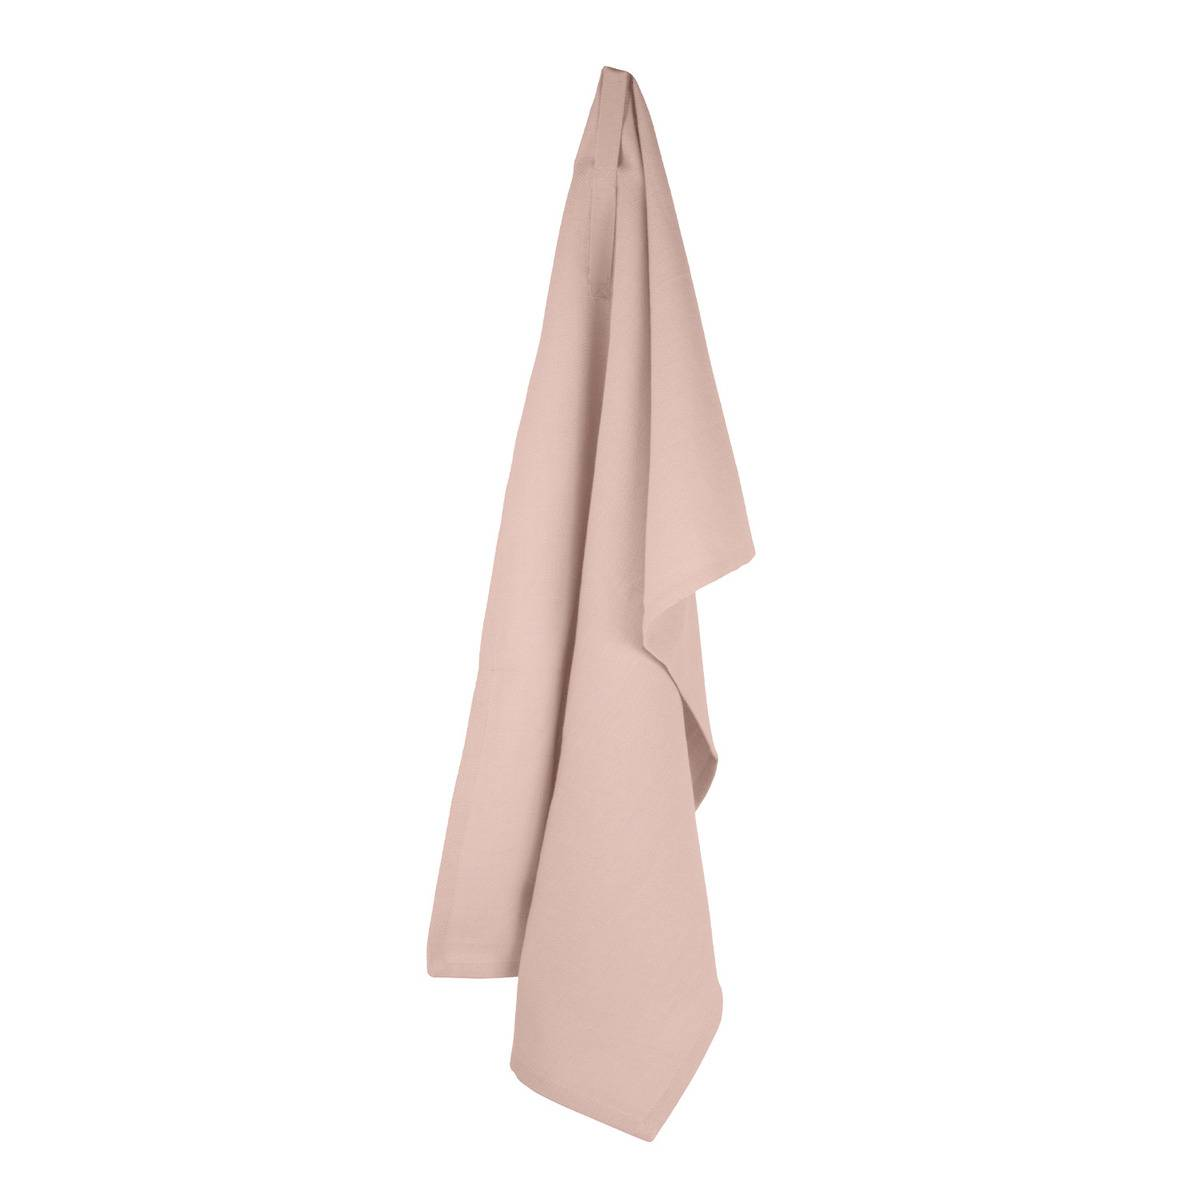 The Organic Company Kitchen towel, pale rose